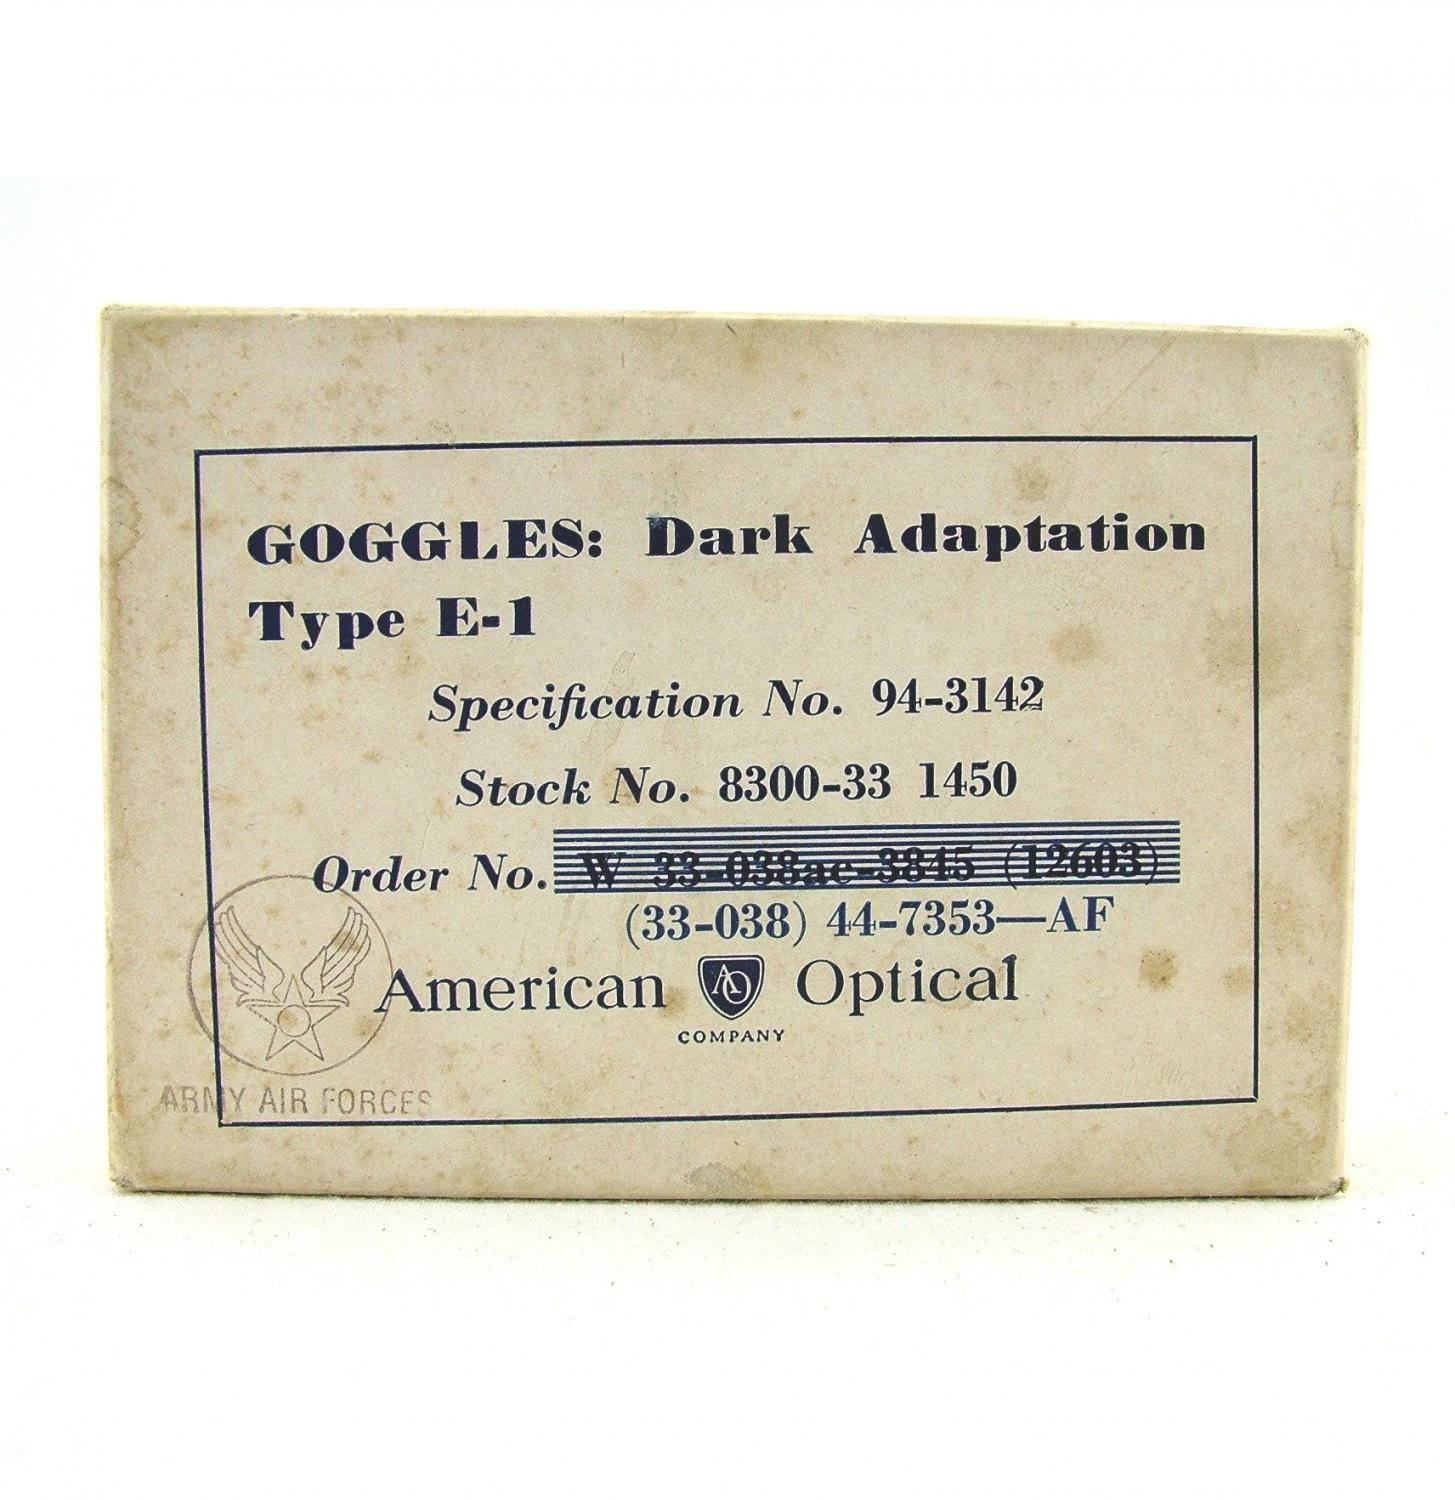 USAAF goggles, dark adaptation, E-1